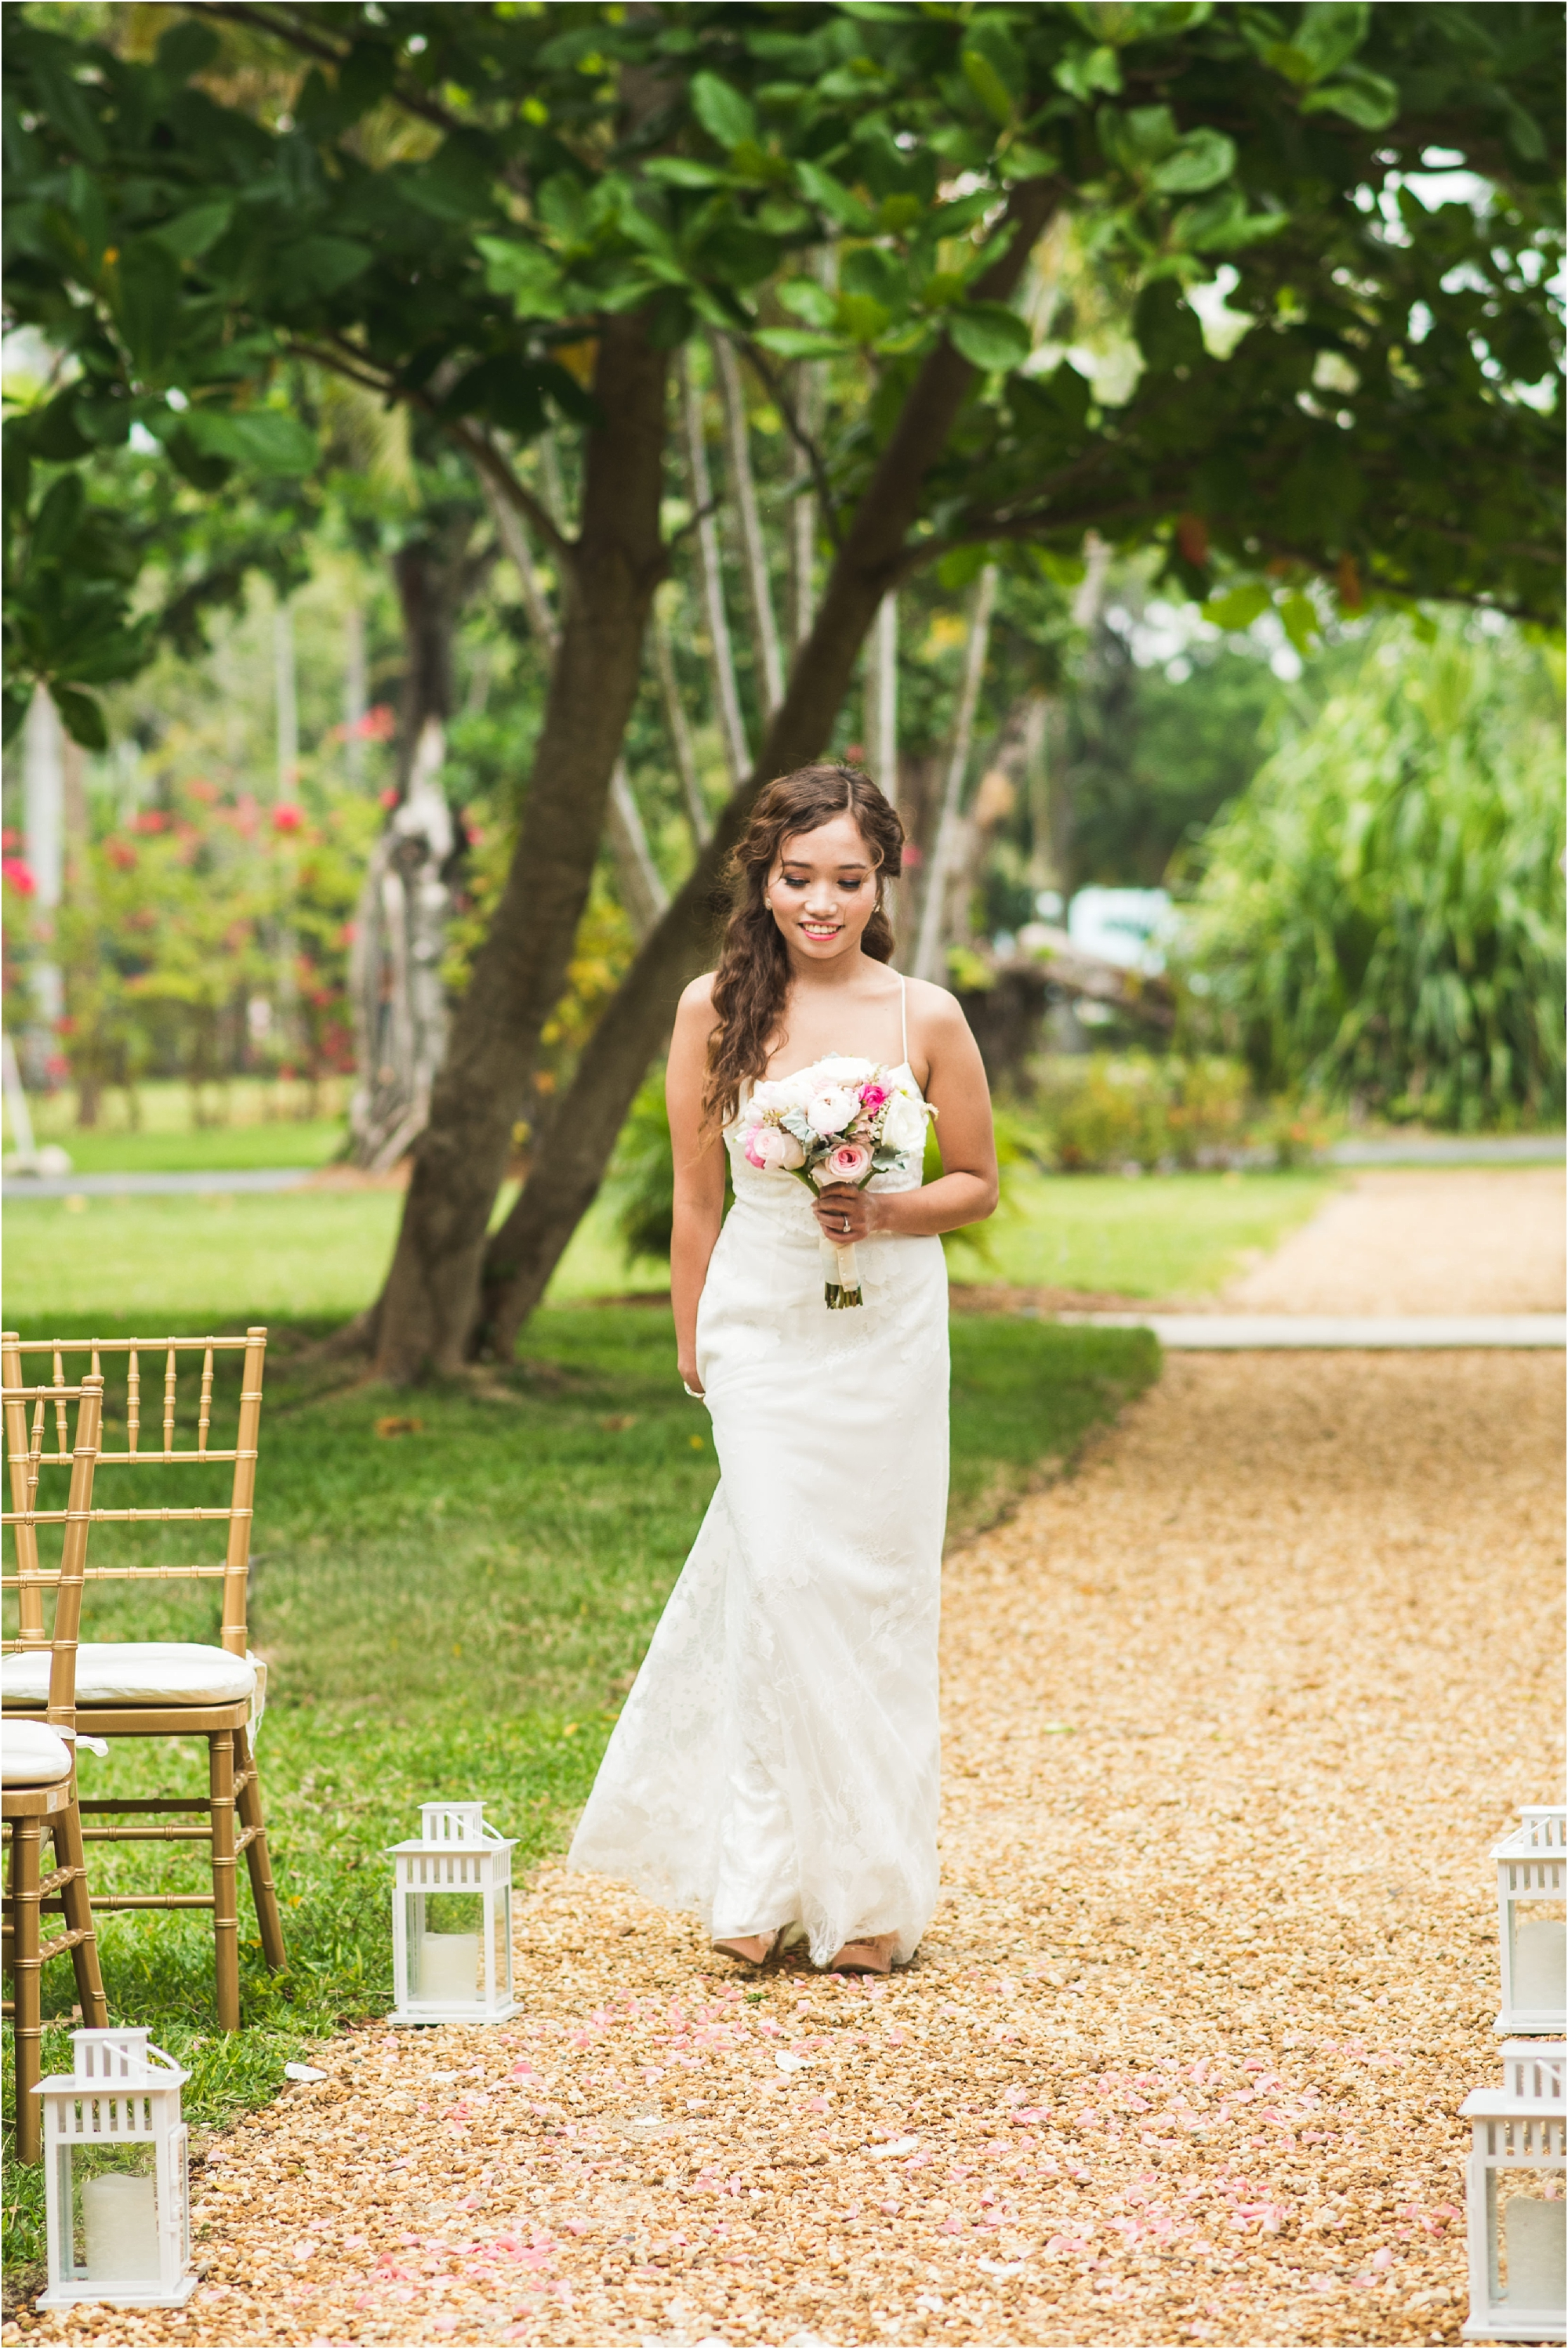 Spanish-Monastery-miami-beach-outdoor-elegant-wedding-photographer-jessenia-gonzalez_1154.jpg